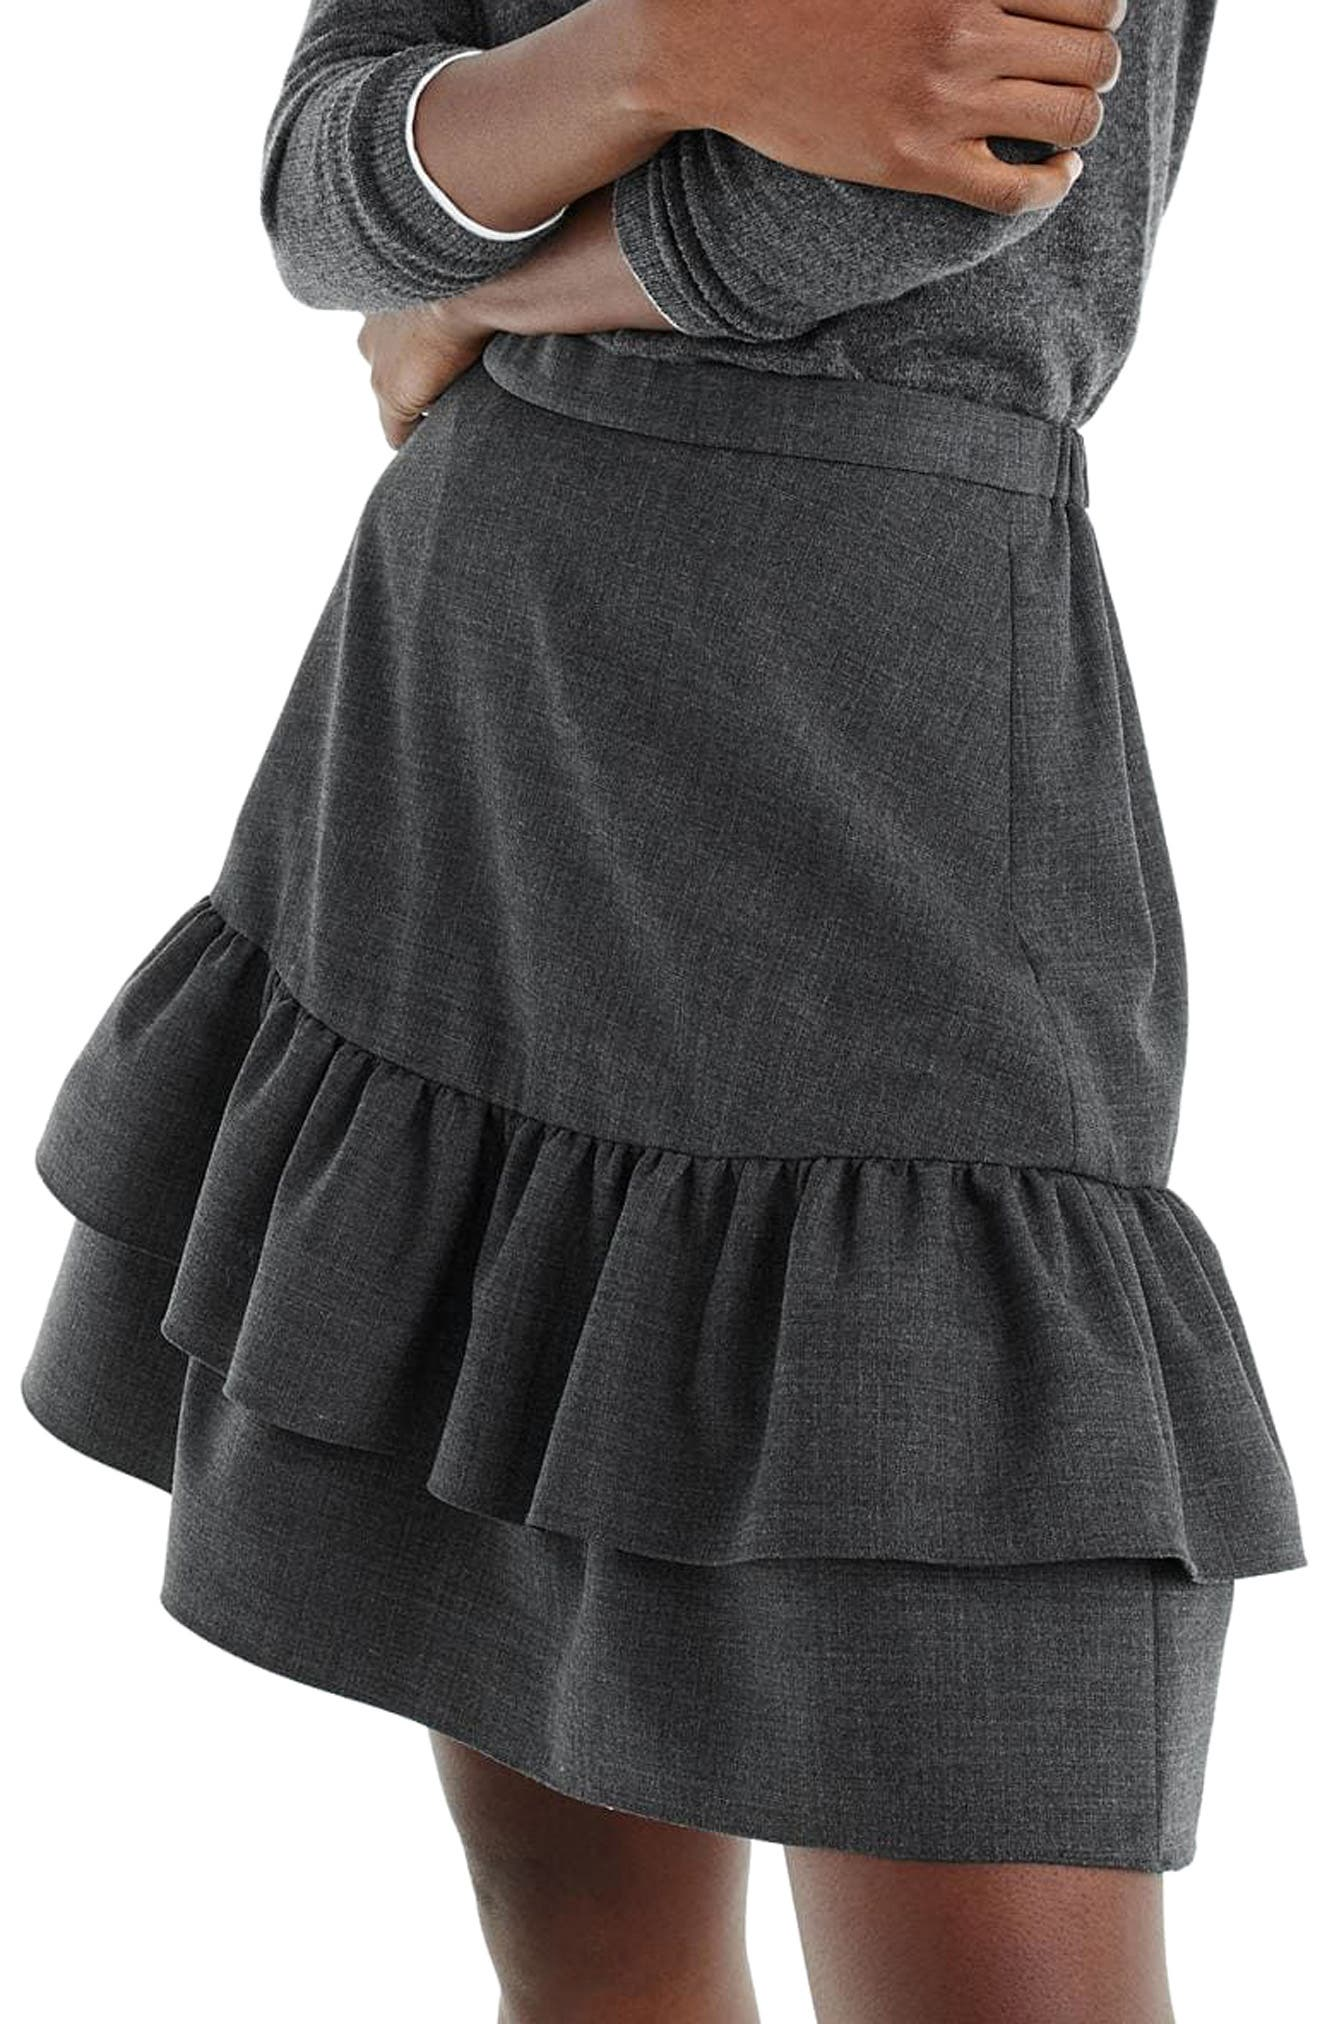 Wool Flannel Ruffle Skirt,                             Alternate thumbnail 3, color,                             020